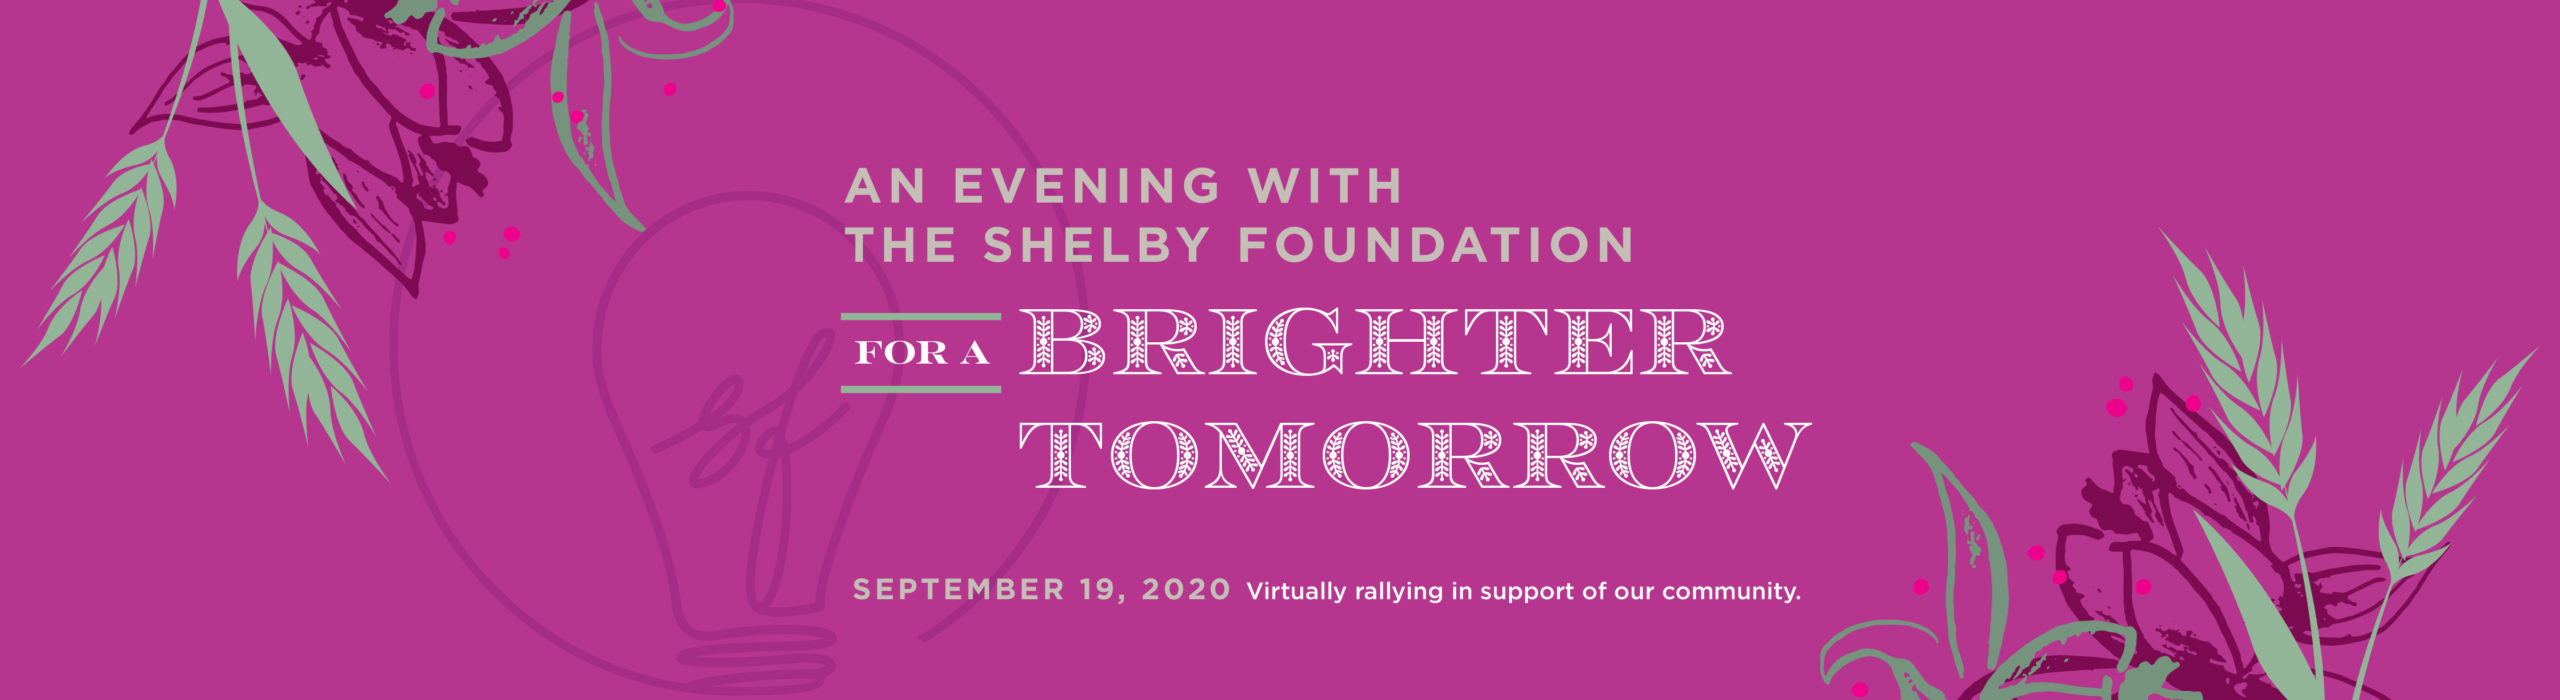 The Shelby Foundation Annual Fundraiser 2020